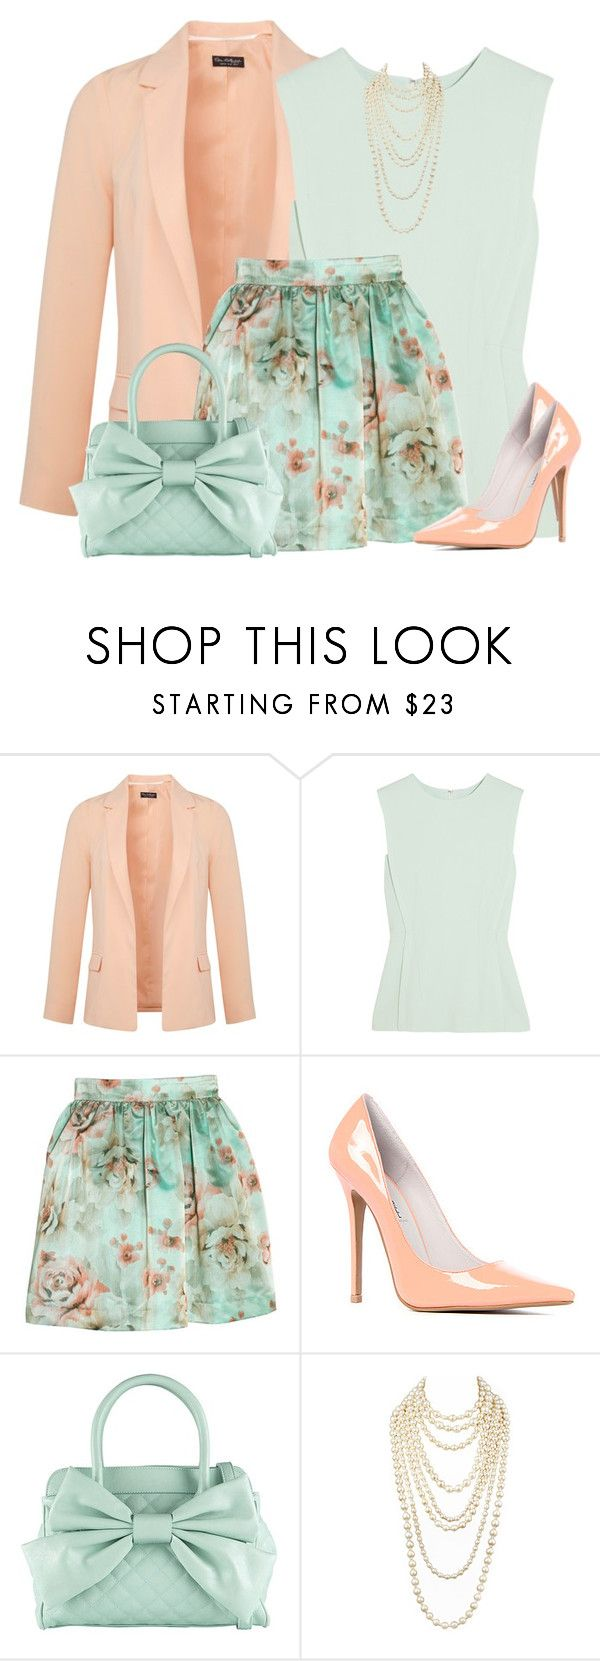 """""""Mint Floral Skirt"""" by daiscat ❤ liked on Polyvore featuring Miss Selfridge, Alexander Wang, Tara Jarmon, Jeffrey Campbell, Call it SPRING and Chanel"""